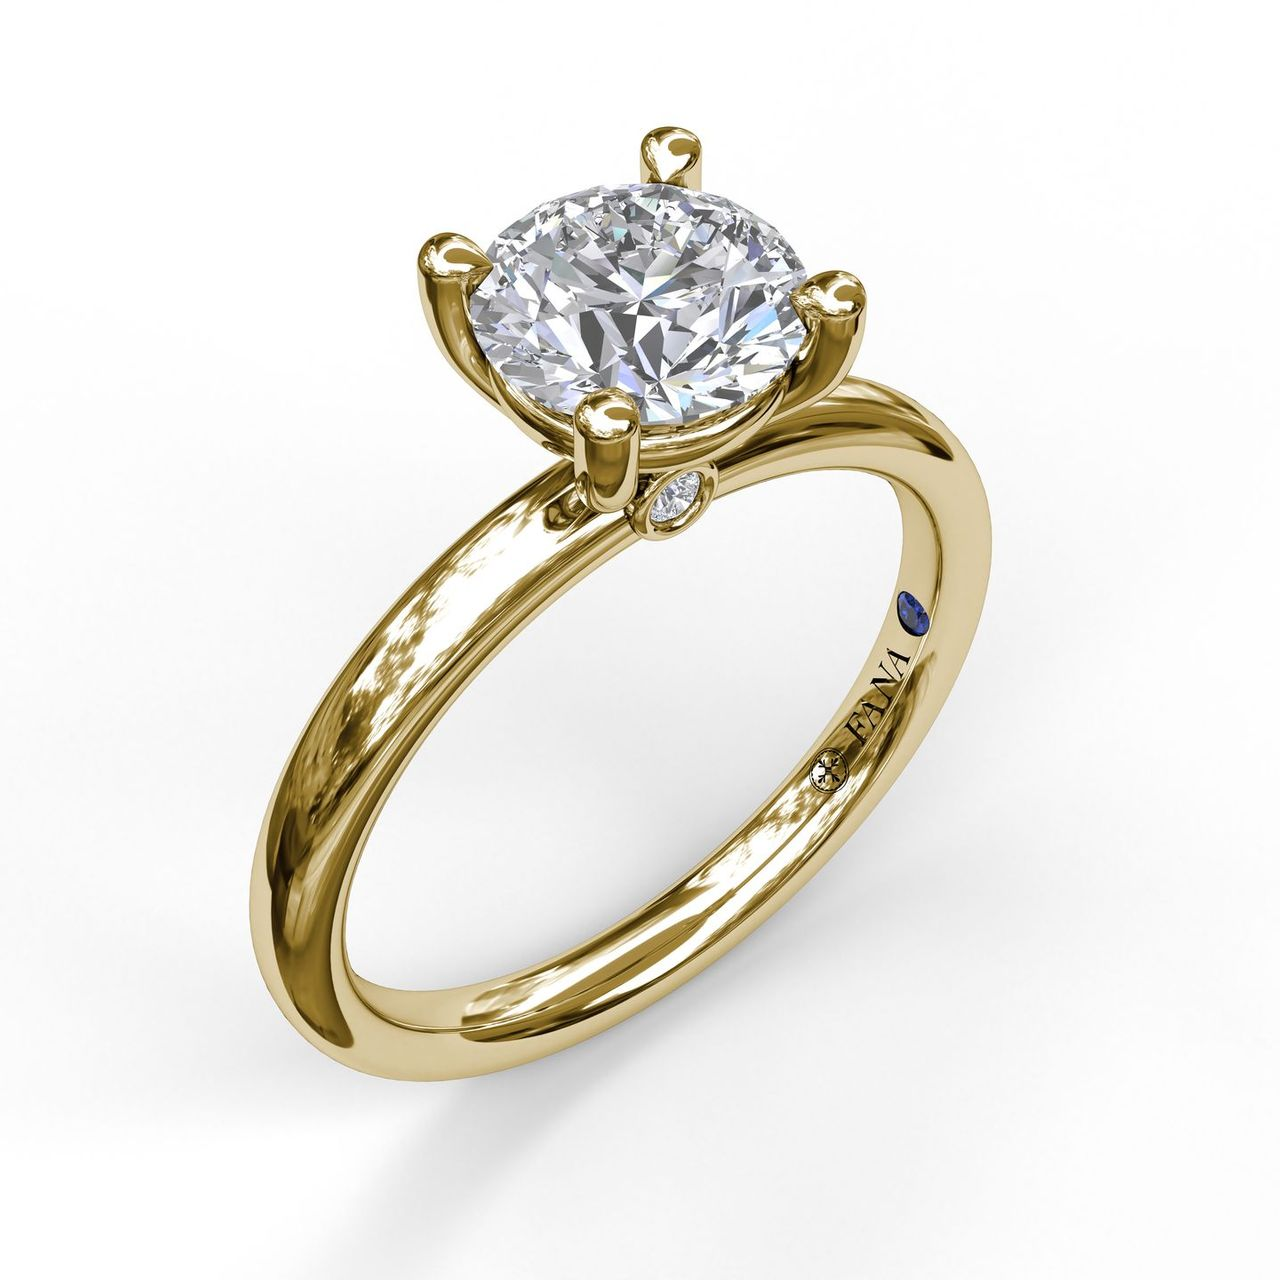 Yellow 14 Karat Solitaire Semi Mount With Peek A Boo Size 6.5 With One Round Cubic Zirconium And 2=0.04Tw Round G/H Vs2-Si1 Diamonds With Signature Sapphire<br>Collection: Fana Jewelry